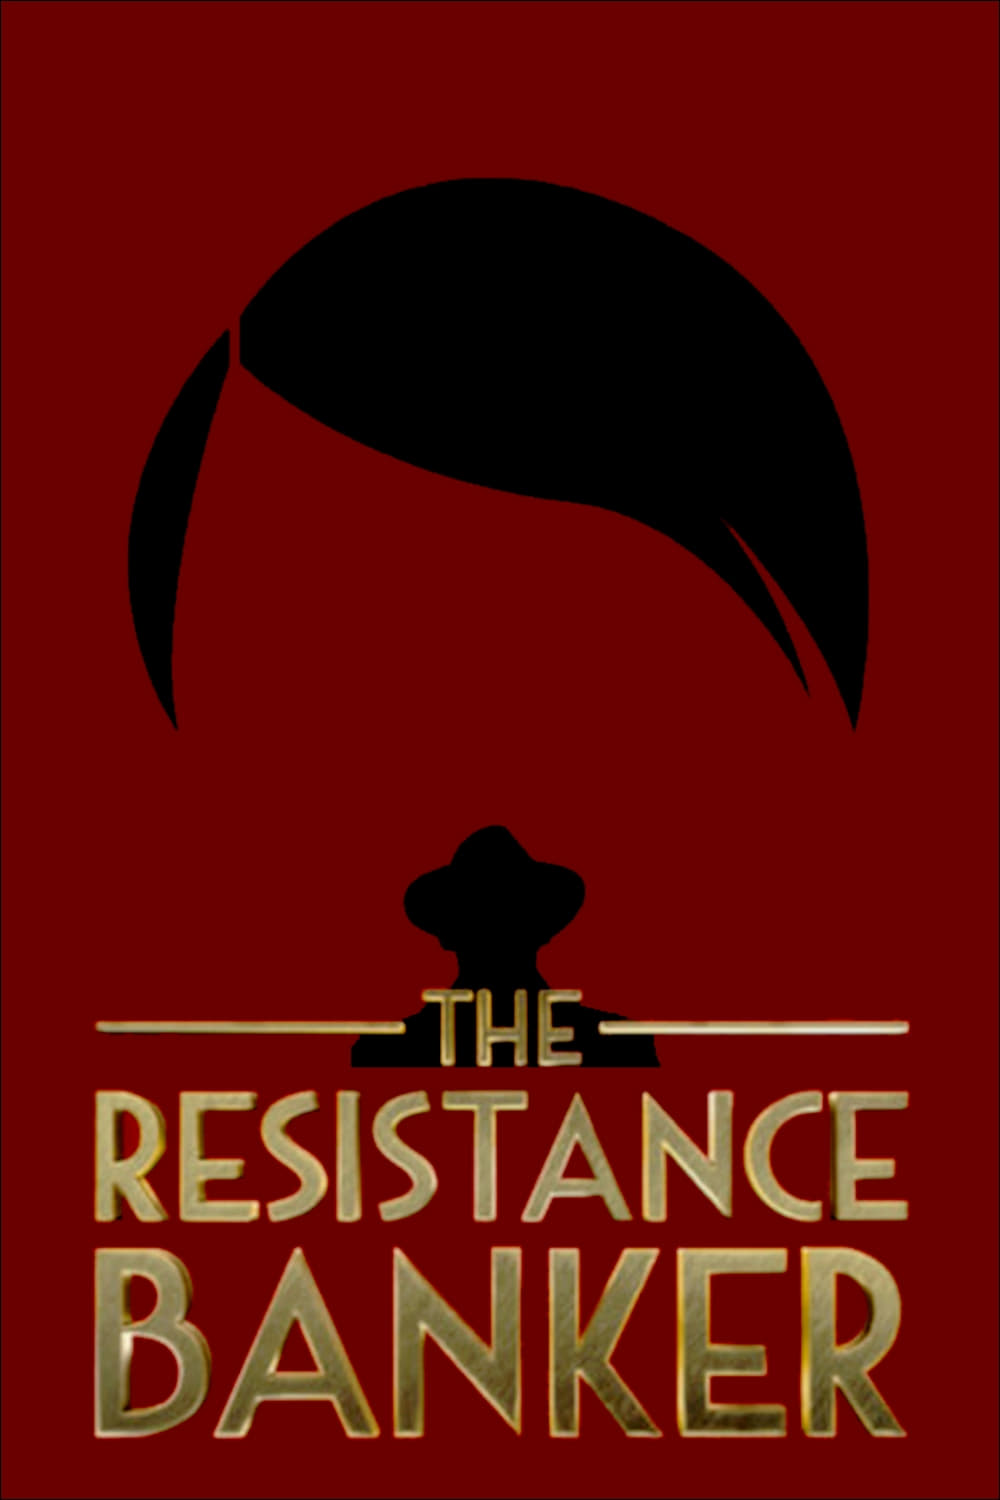 image for The Resistance Banker